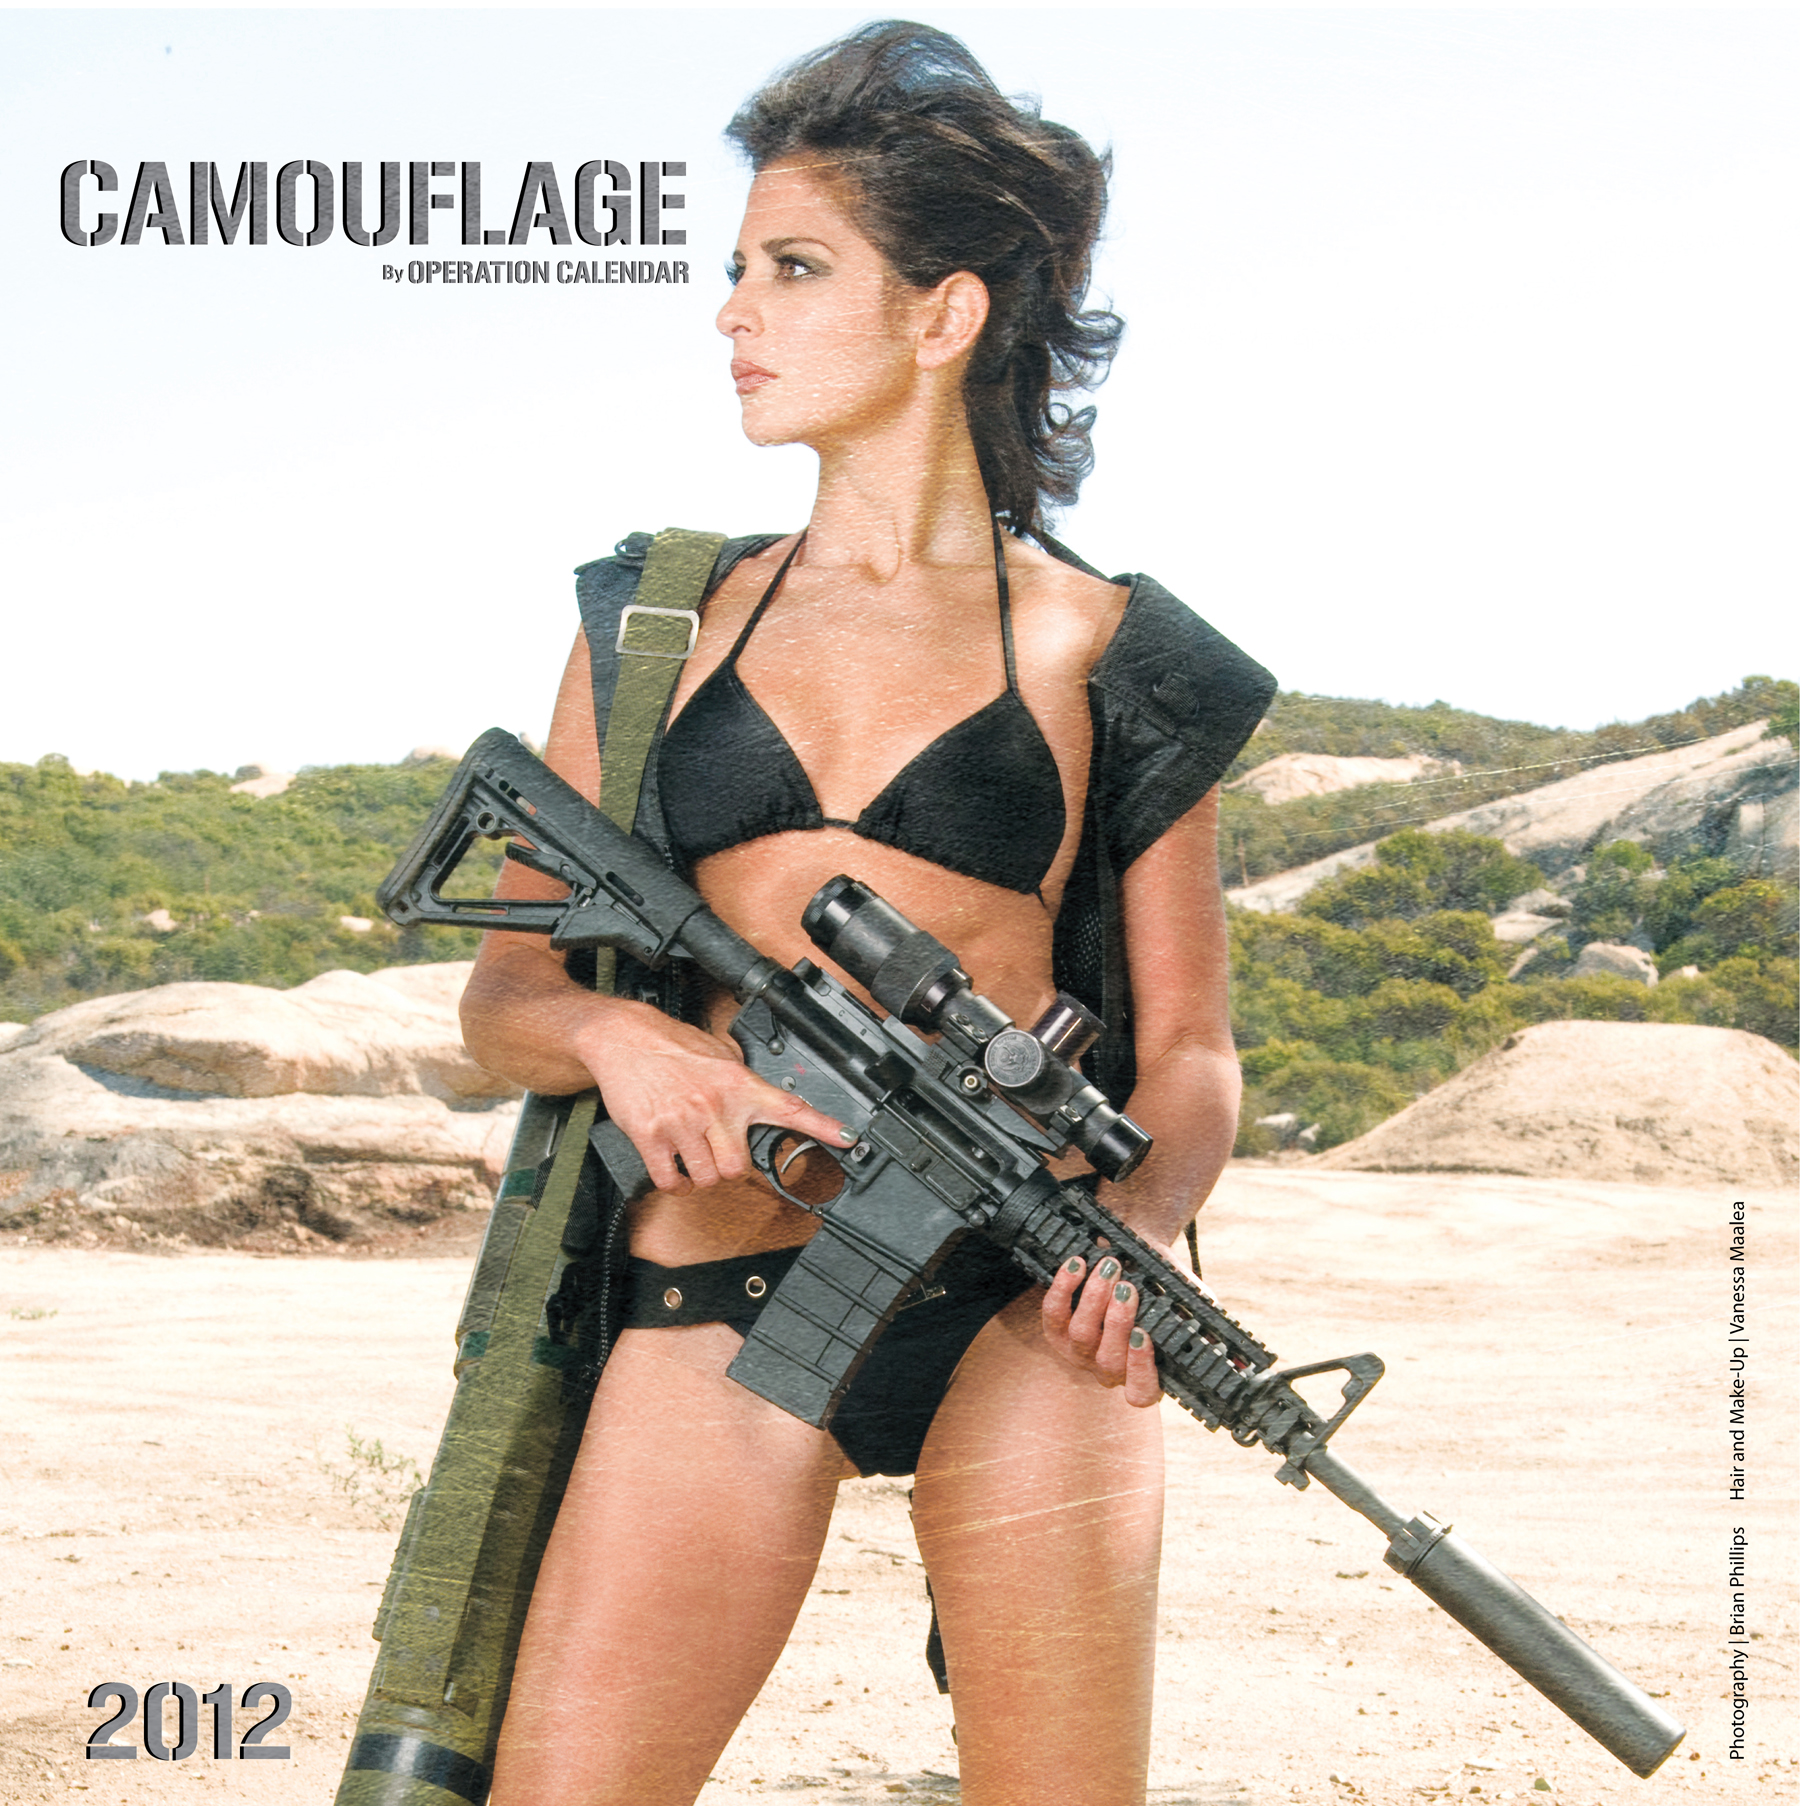 2012-06-11-FrontCover2012.jpg